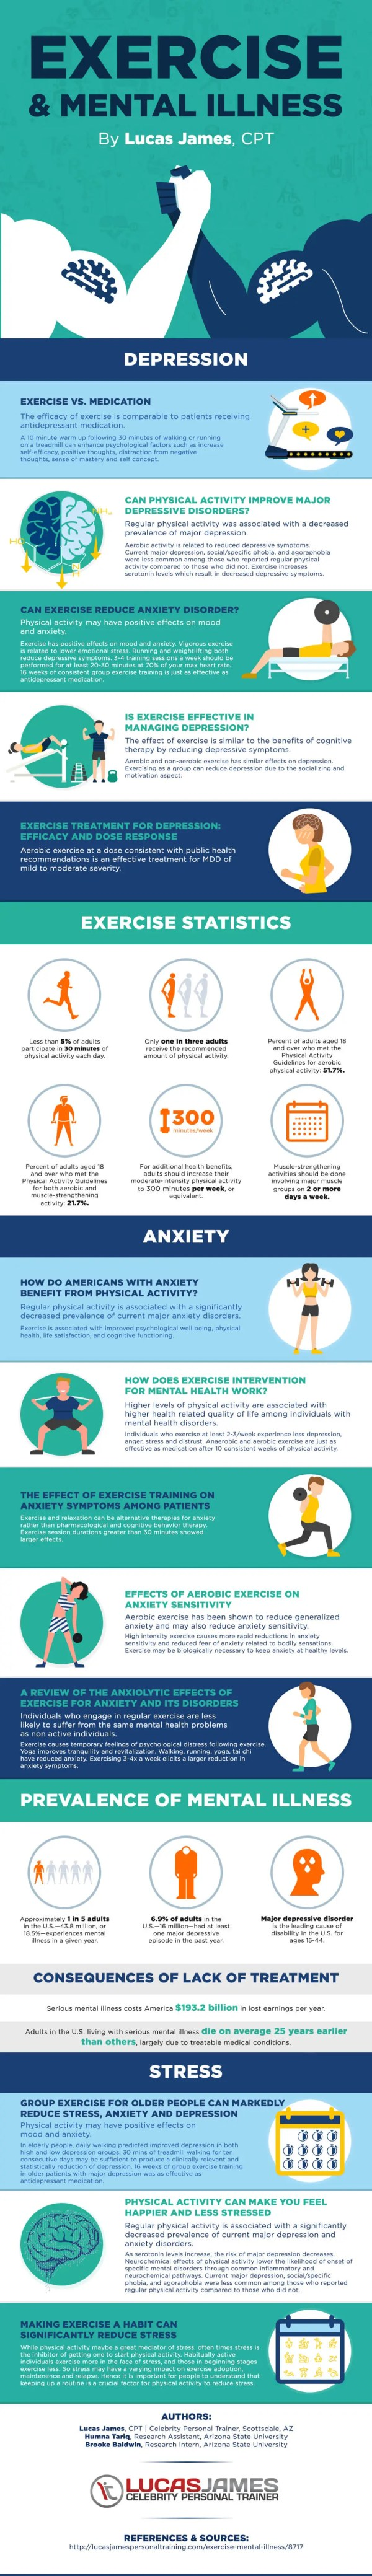 Excercise-Mental-Illness-Infographic-Lucas-James-1